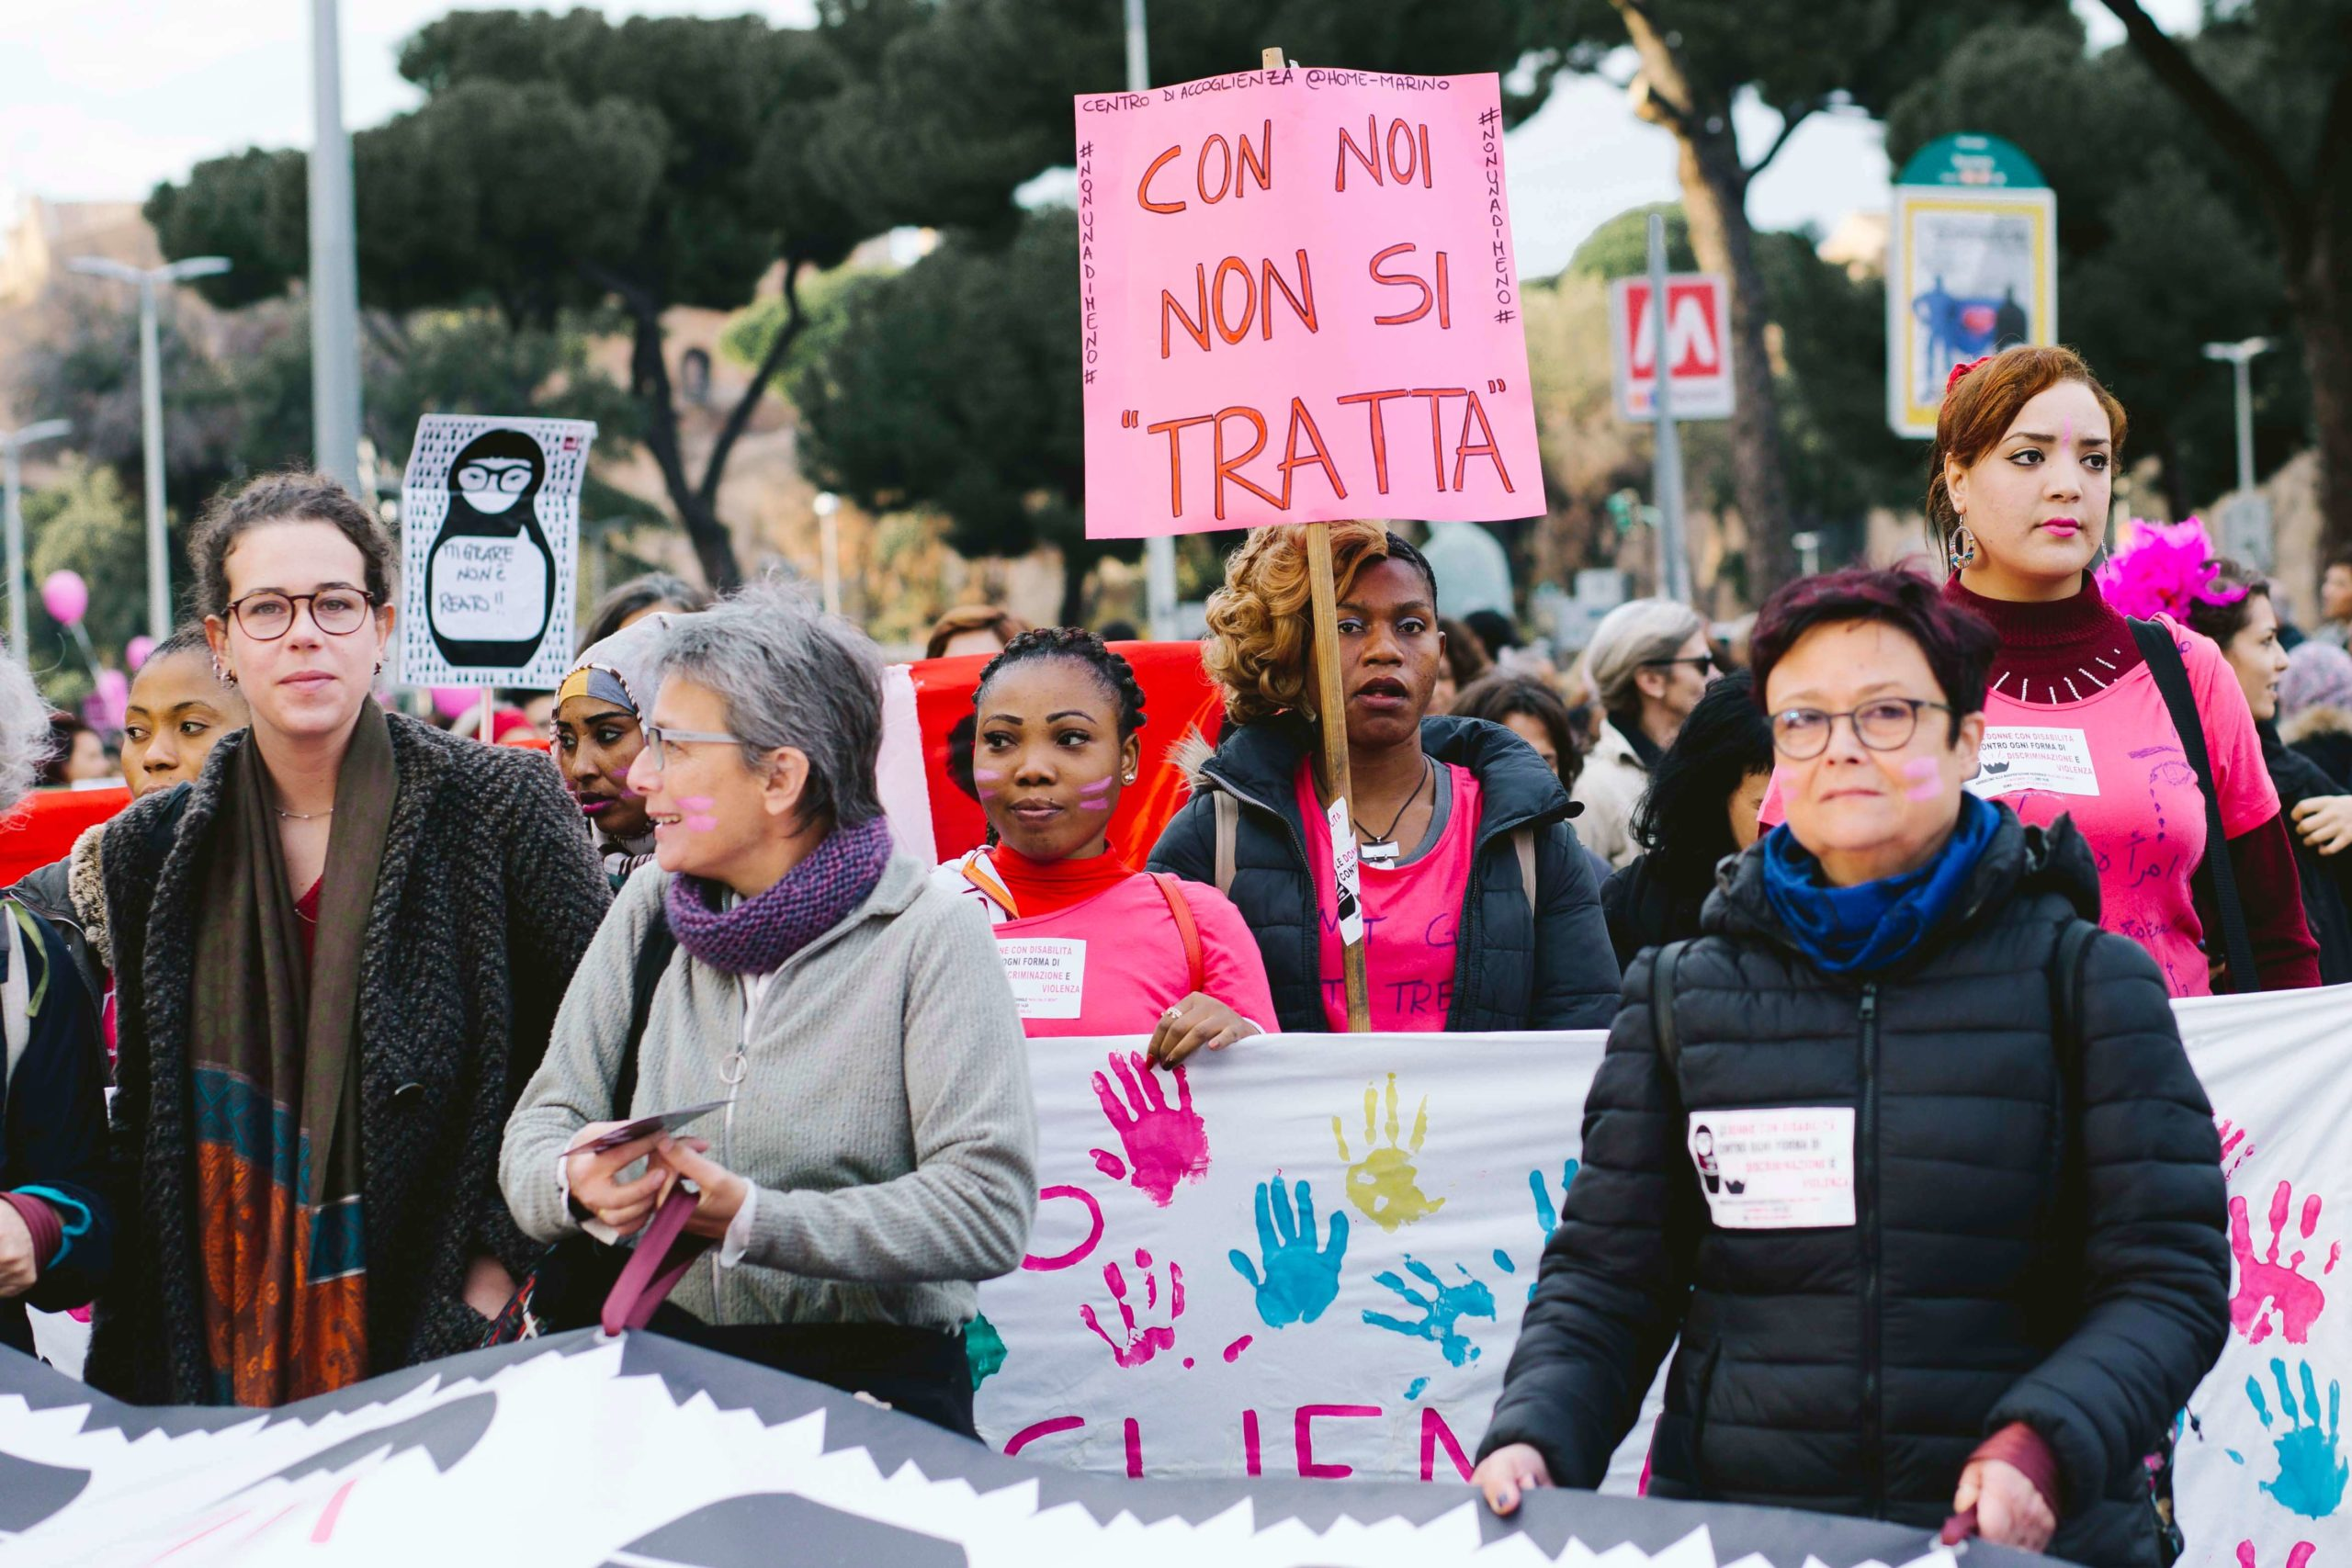 WomenMarch25november©Elena-Manfredi-2